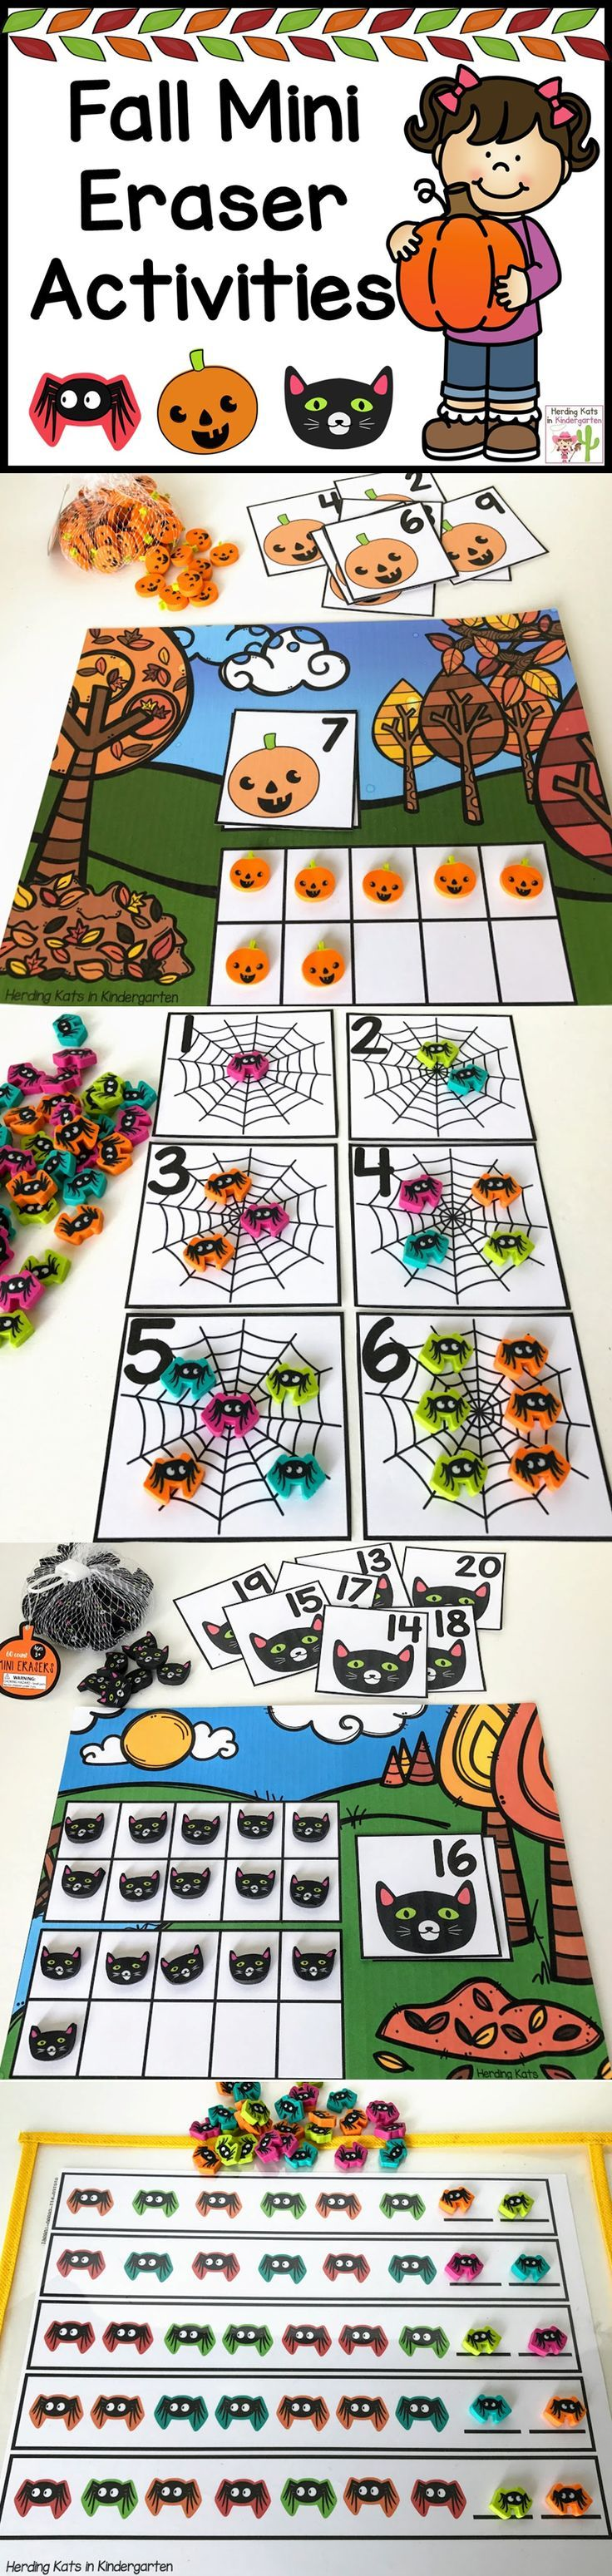 Math activities for the Fall Target mini erasers - ten frames, 1-1 correspondence, patterns and number recognition.